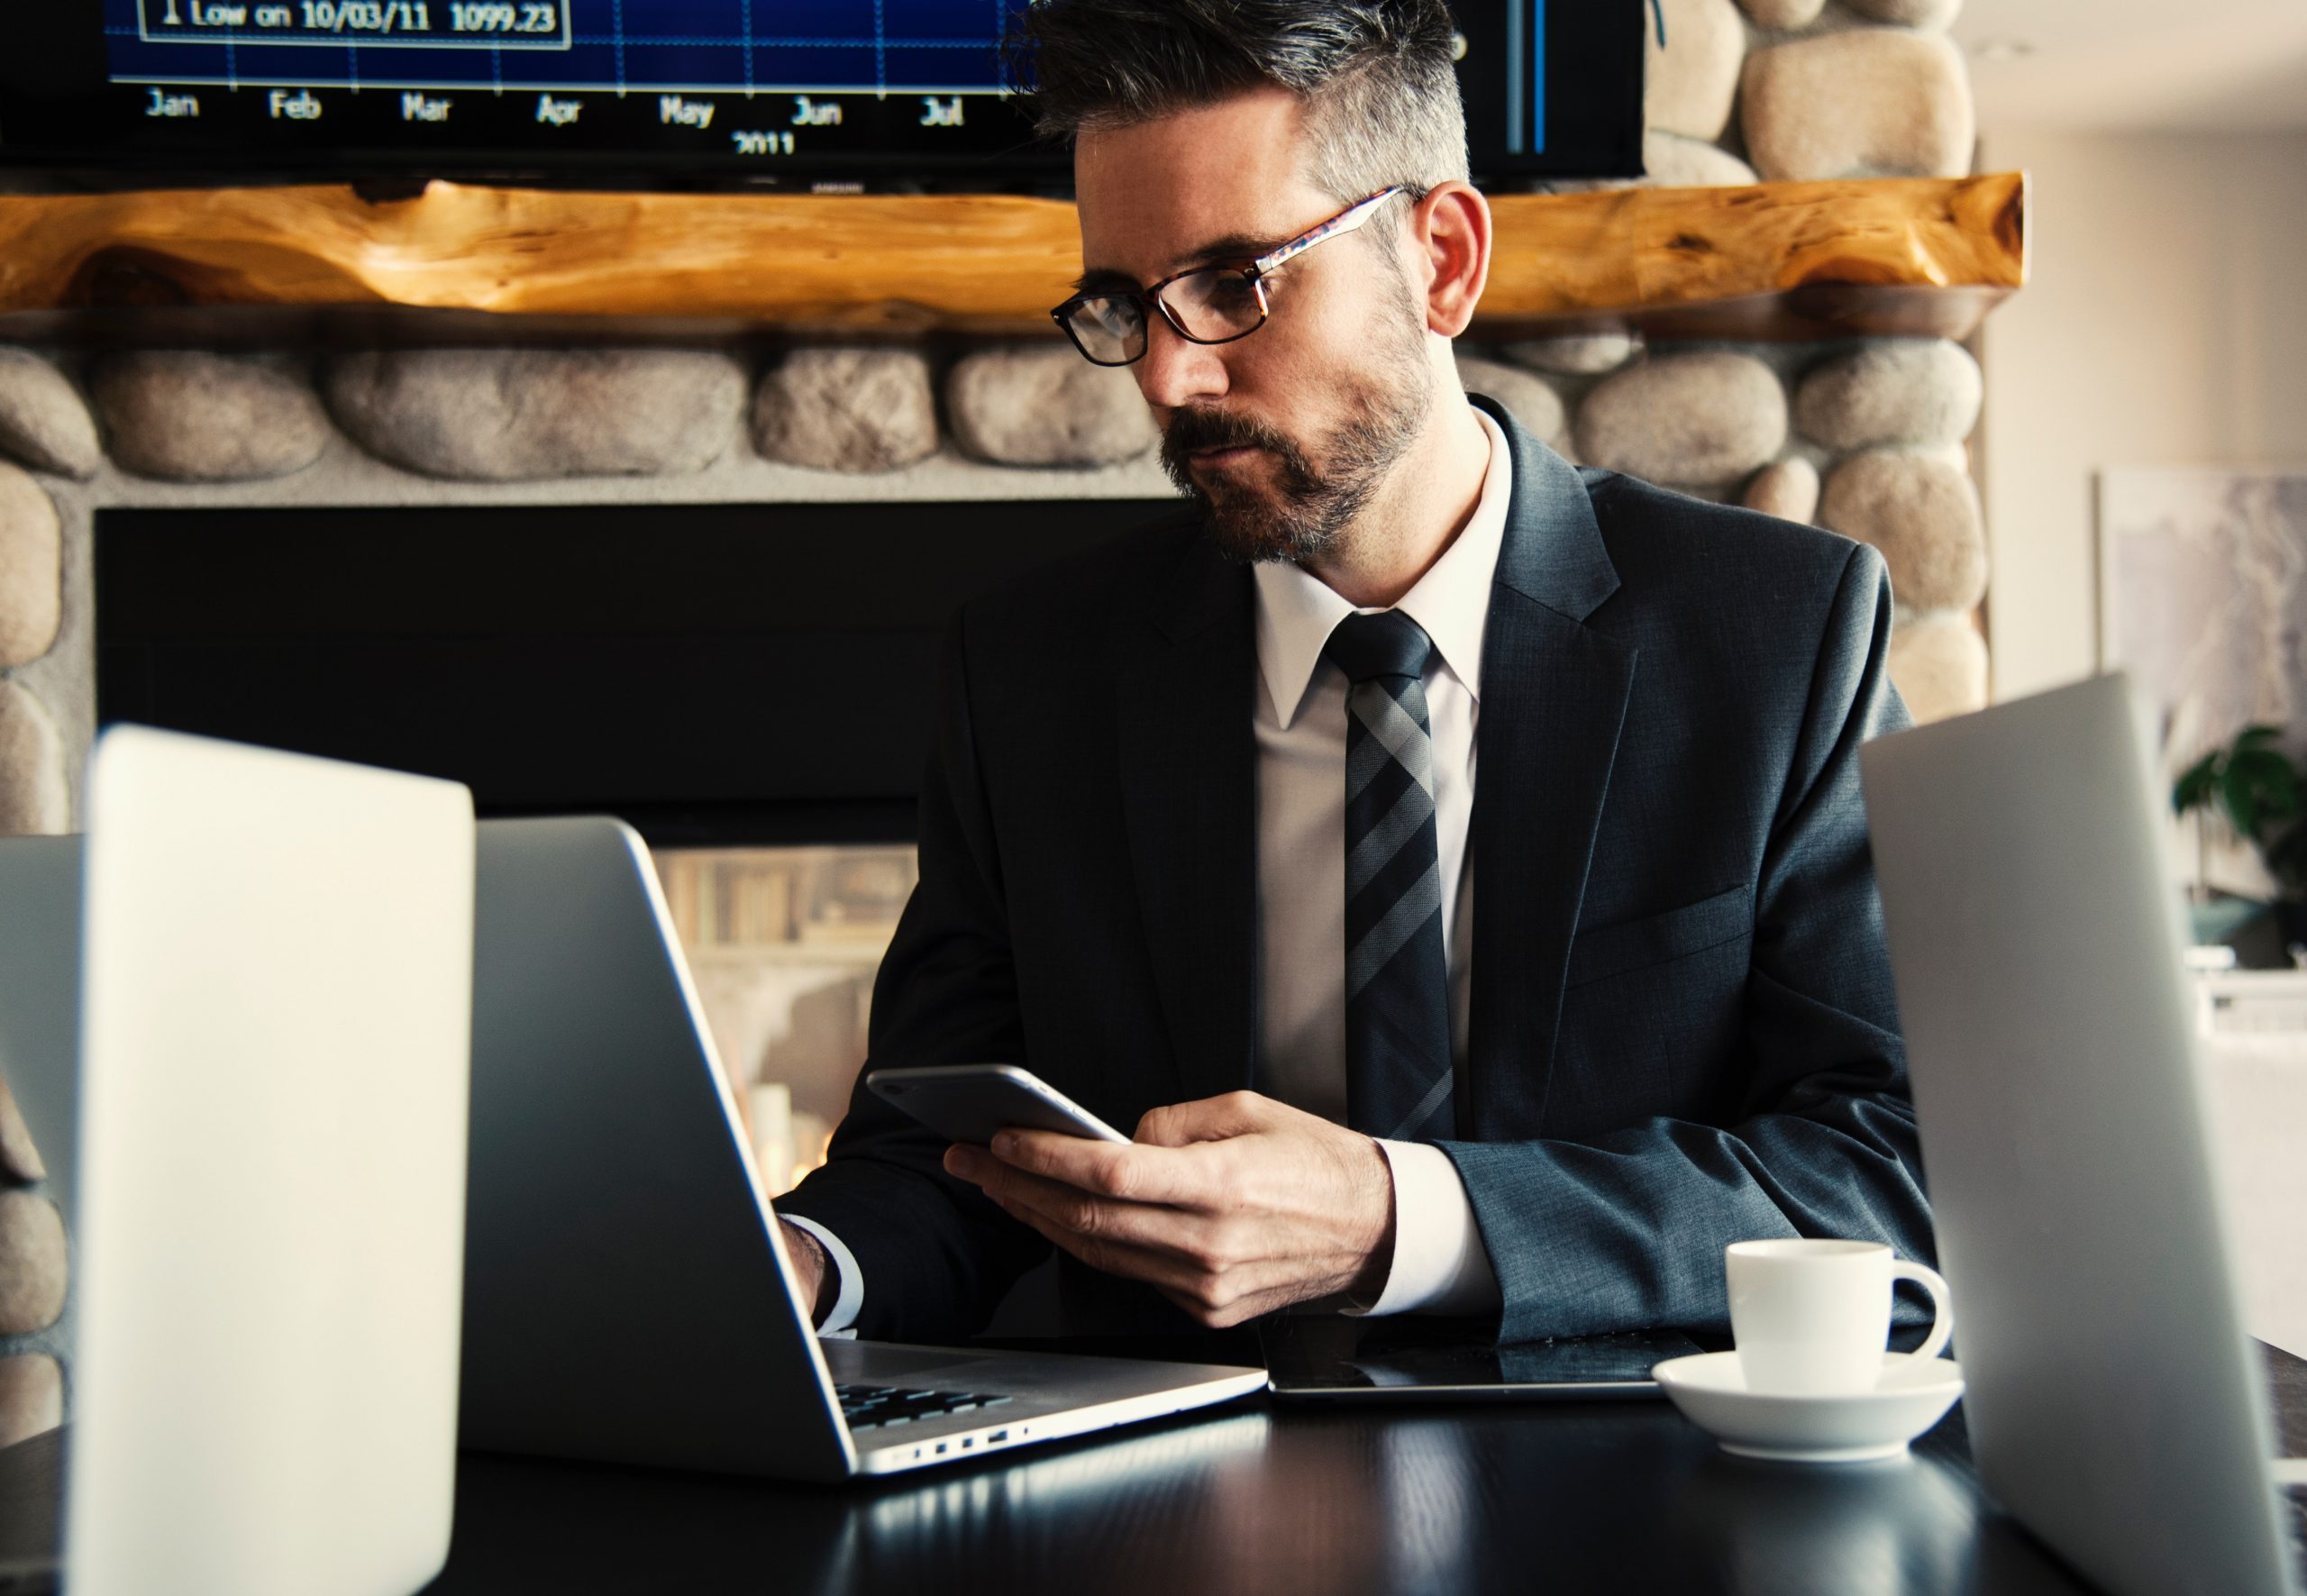 business accountant brisbane - man using laptop and phone